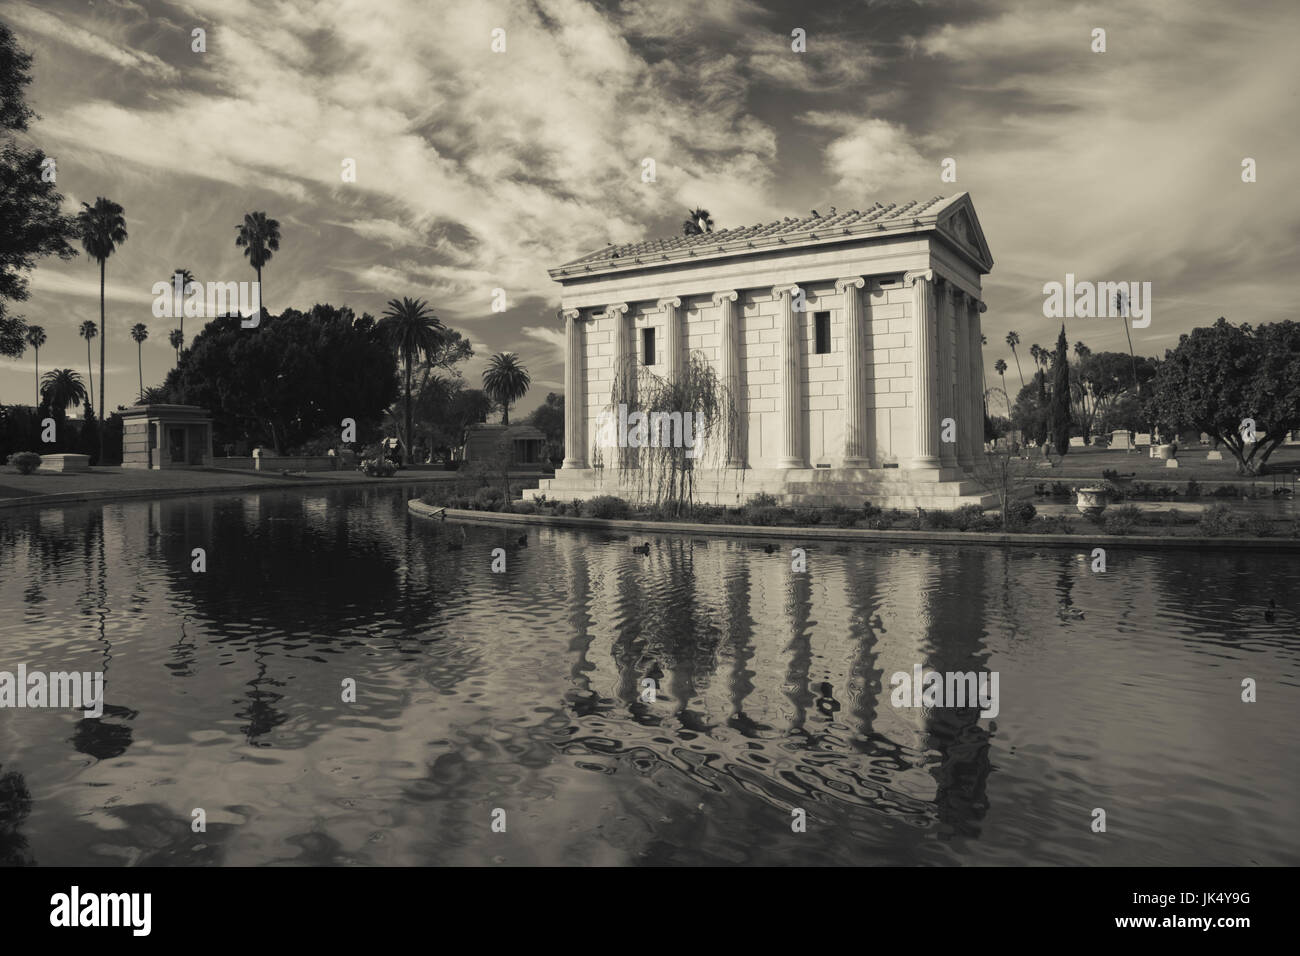 USA, California, Los Angeles, Hollywood, Hollywood Forever Cemetery, Garden of the Legends and Lake Island Stock Photo